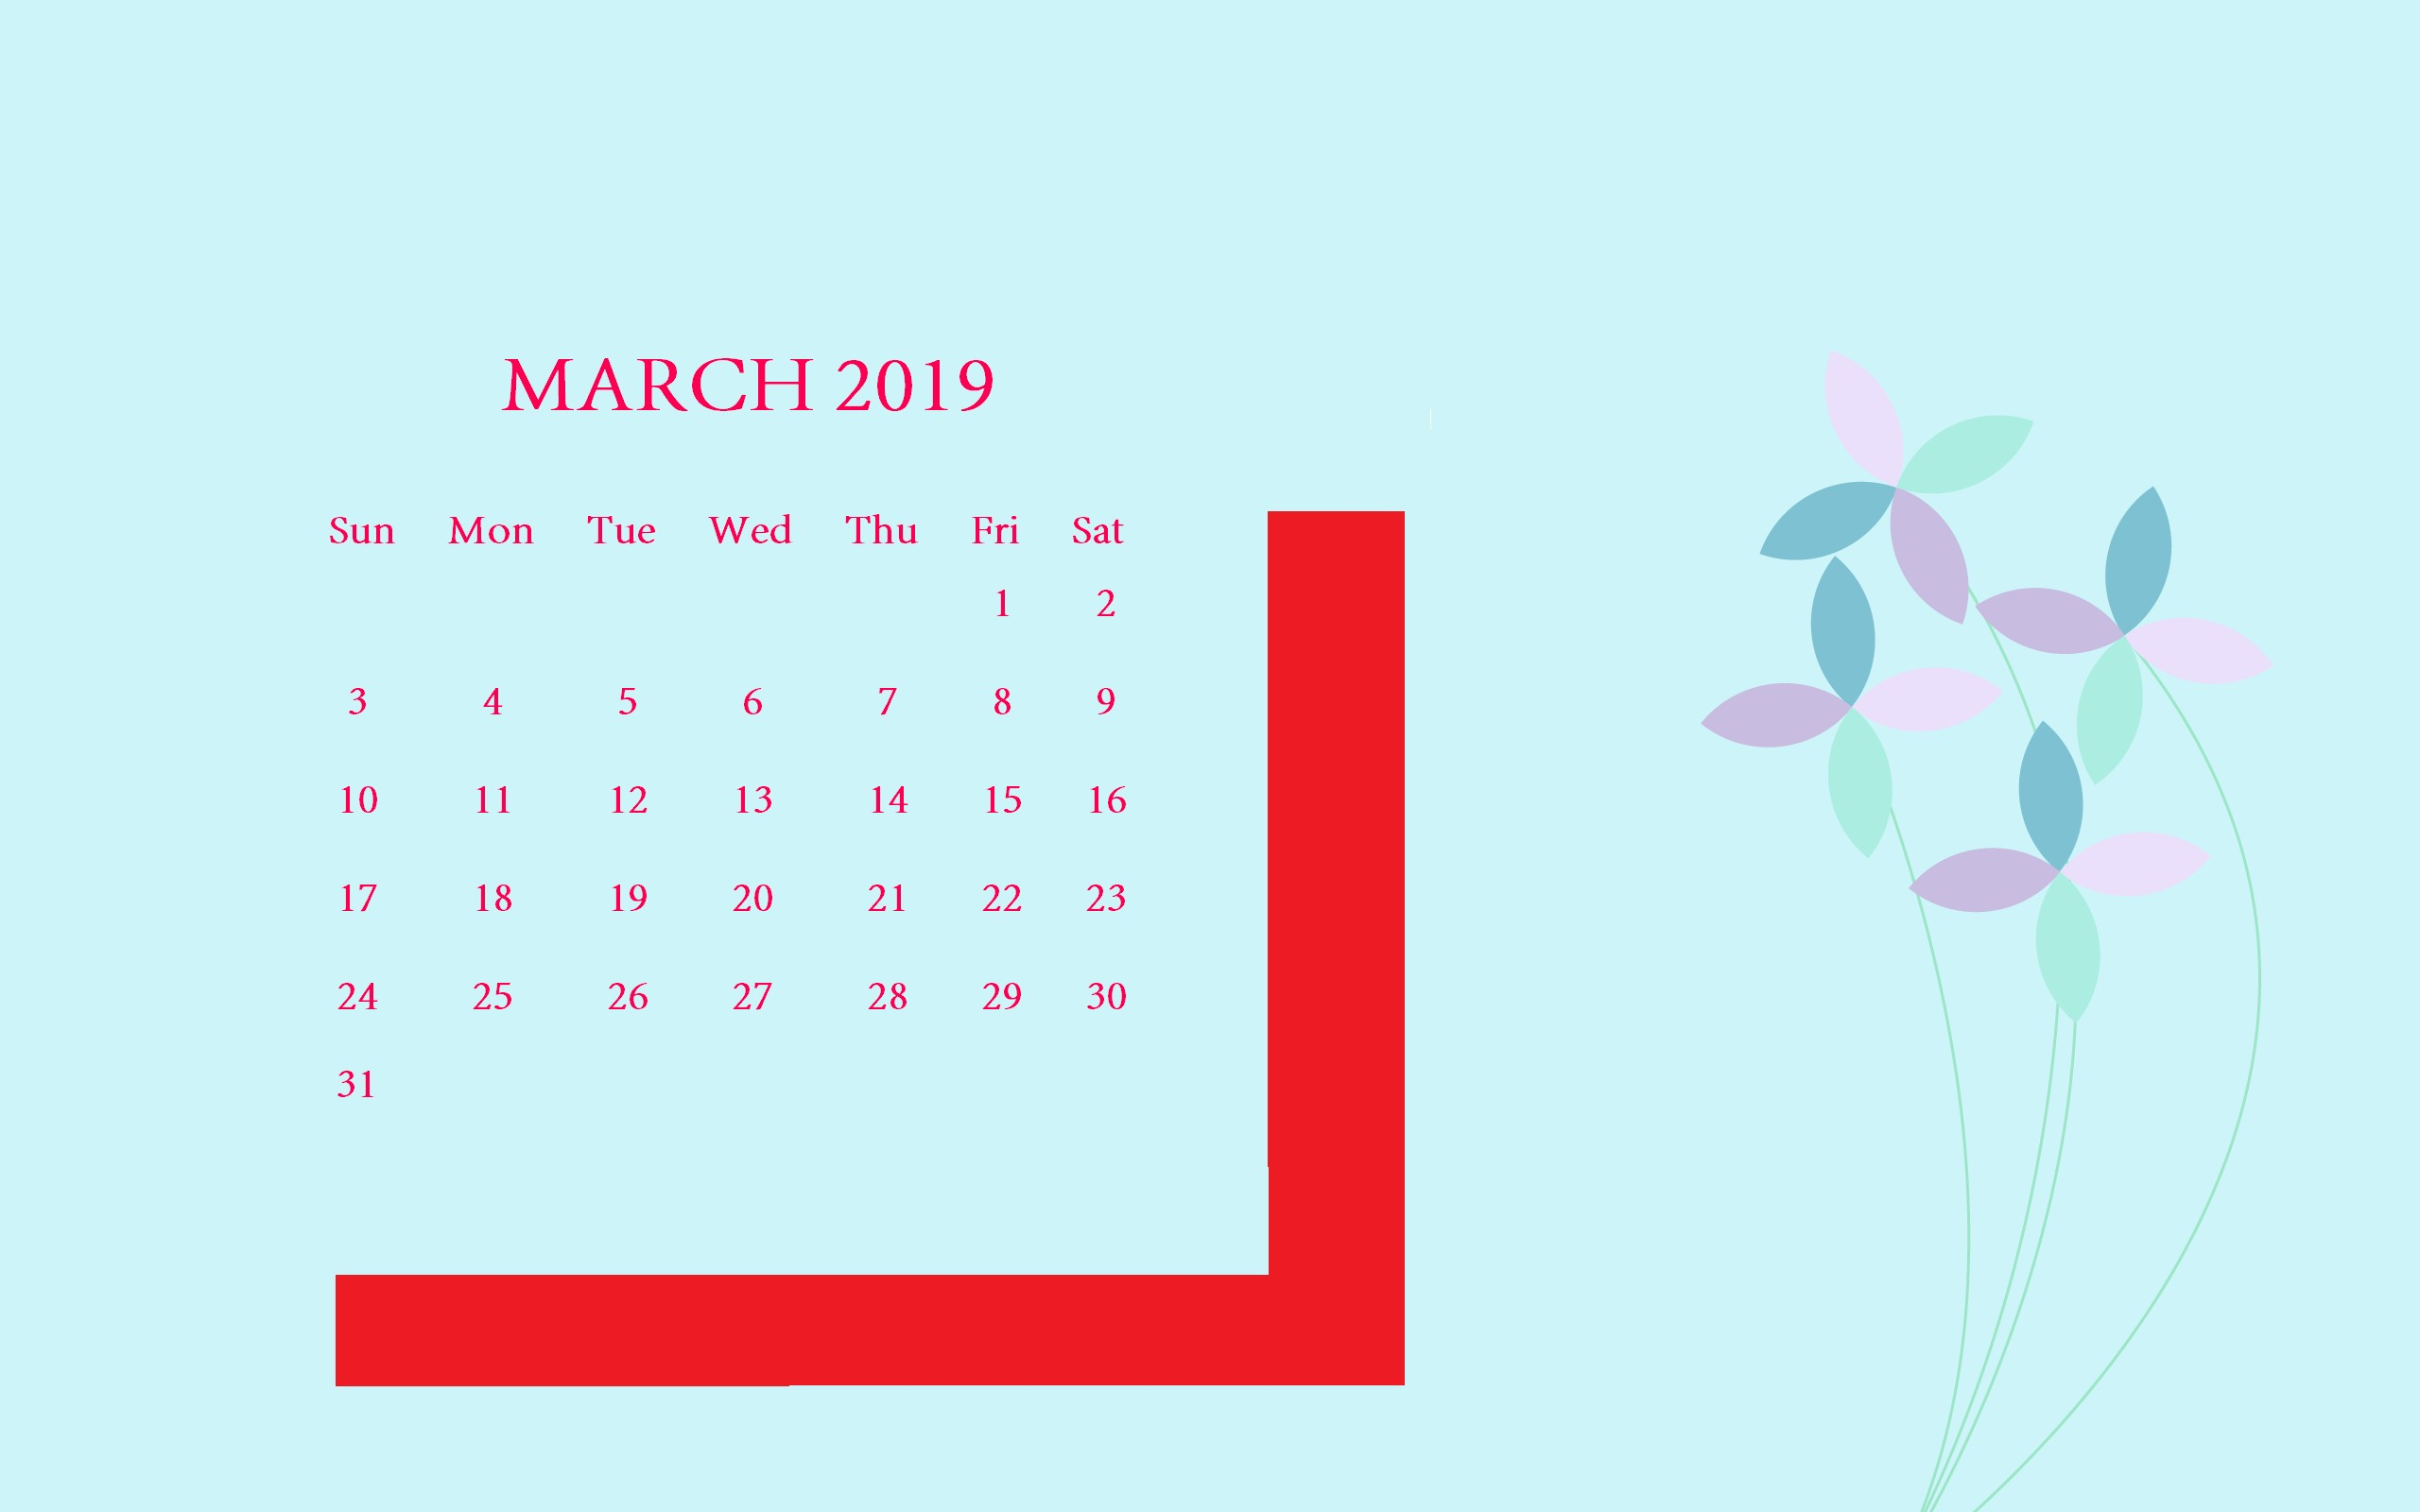 March Calendar Png Más Arriba-a-fecha Flowers March 2019 Desktop Calendar March March2019 Of March Calendar Png Actual Index Of Images 0 0d